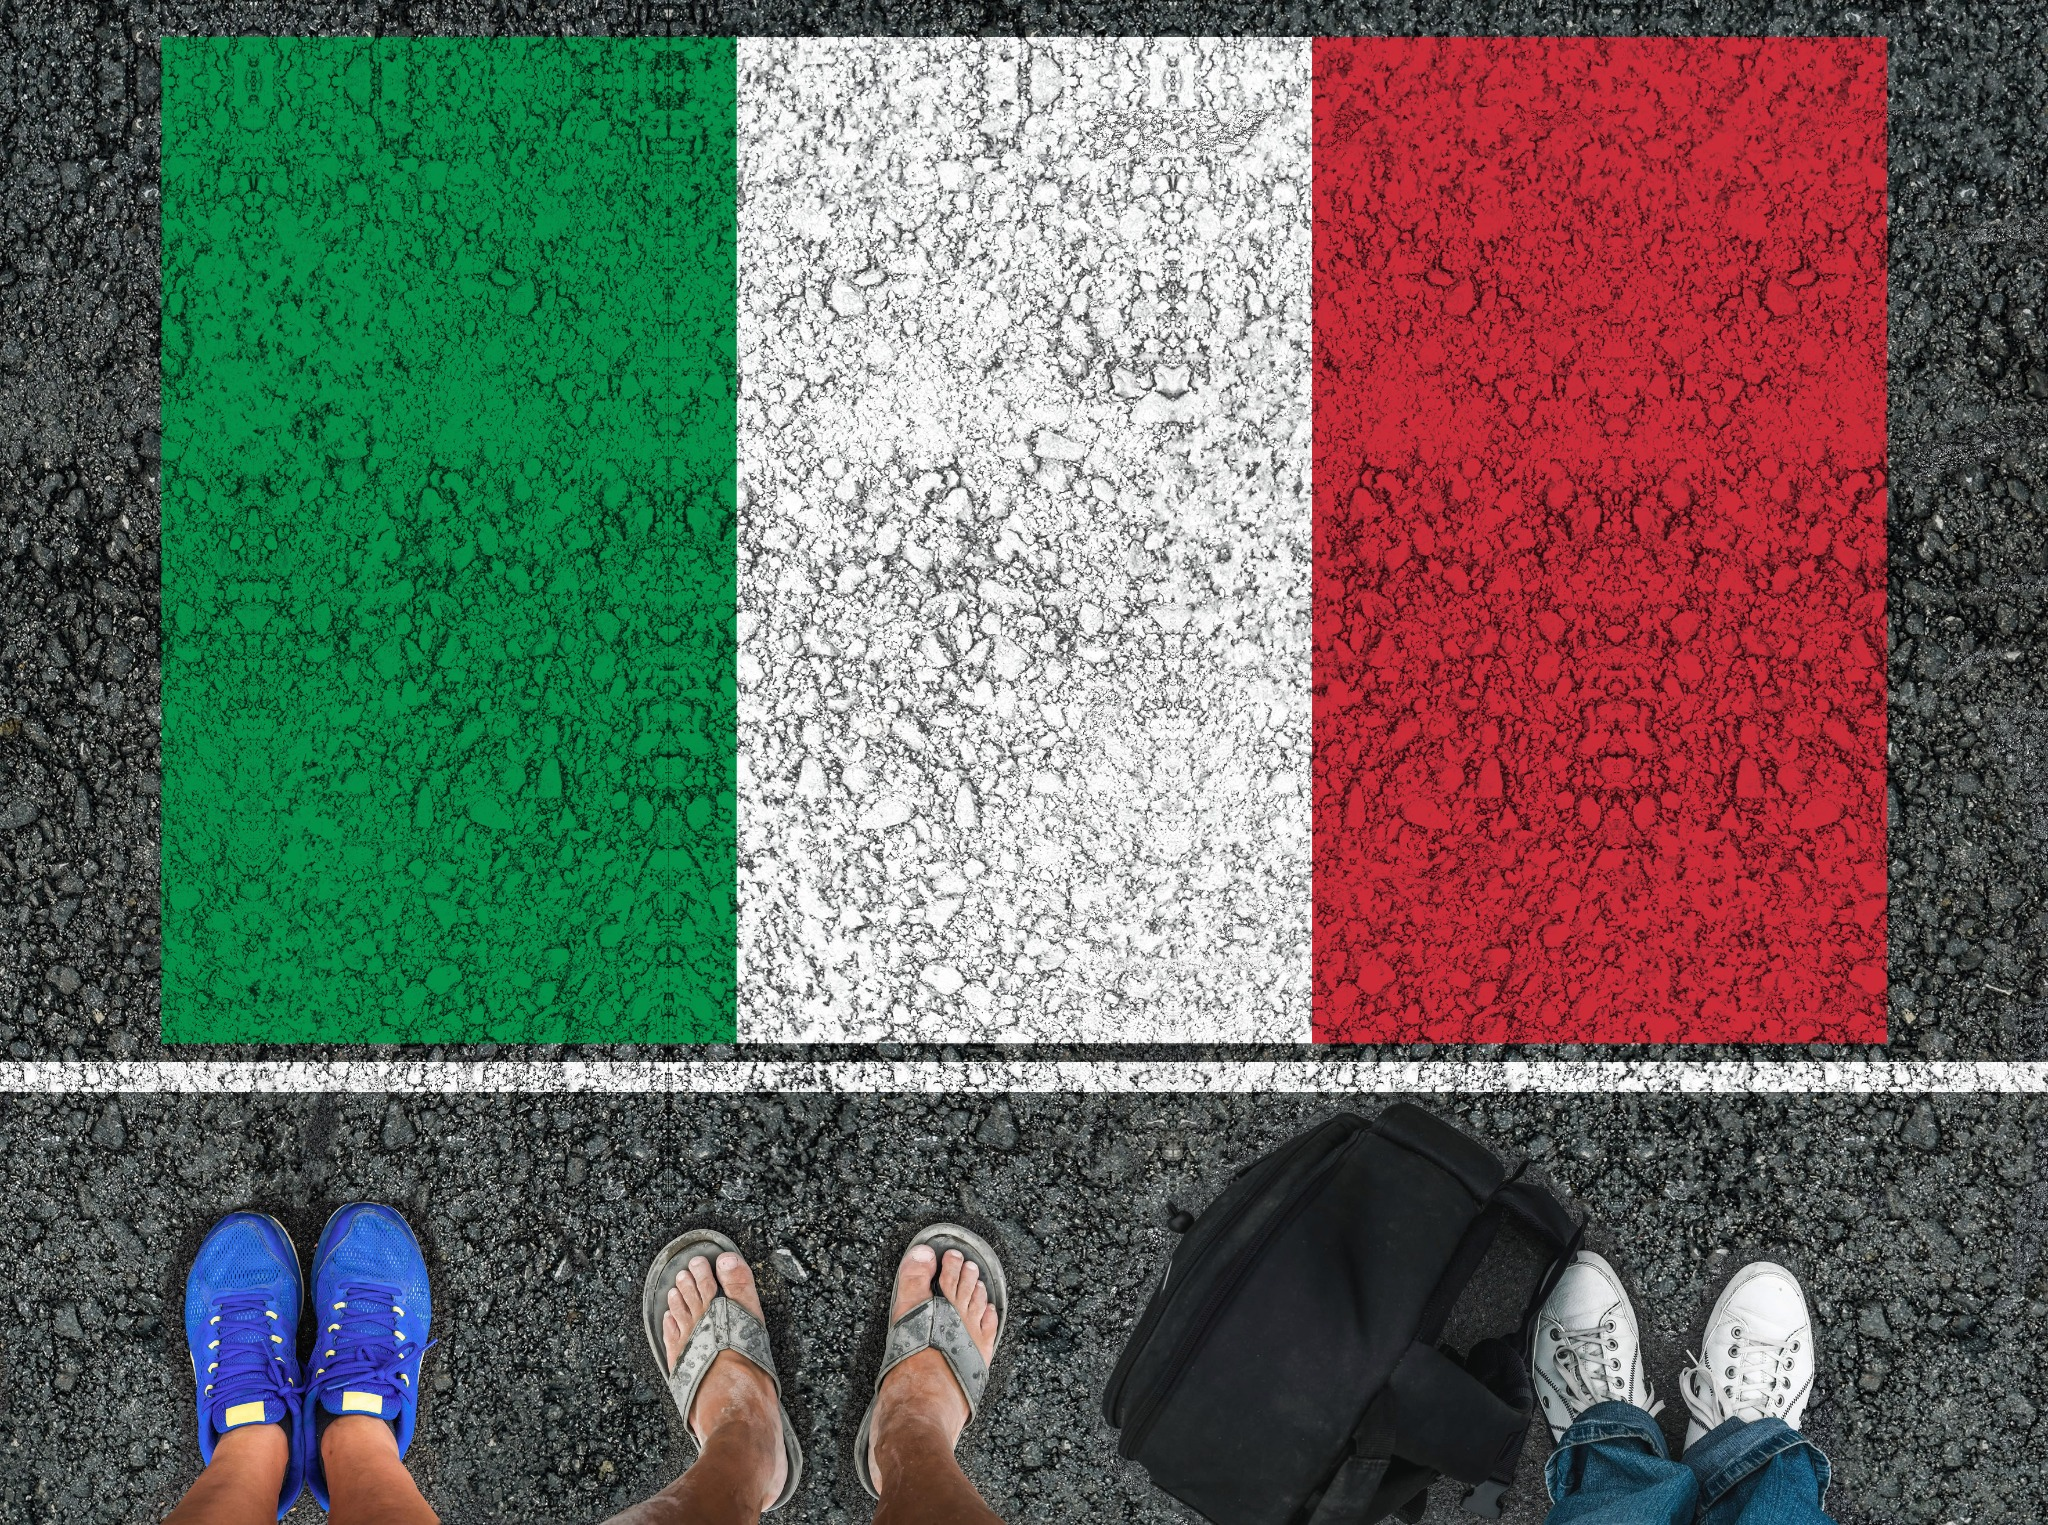 5 Reasons To Use A Professional For Your Italian Citizenship Application